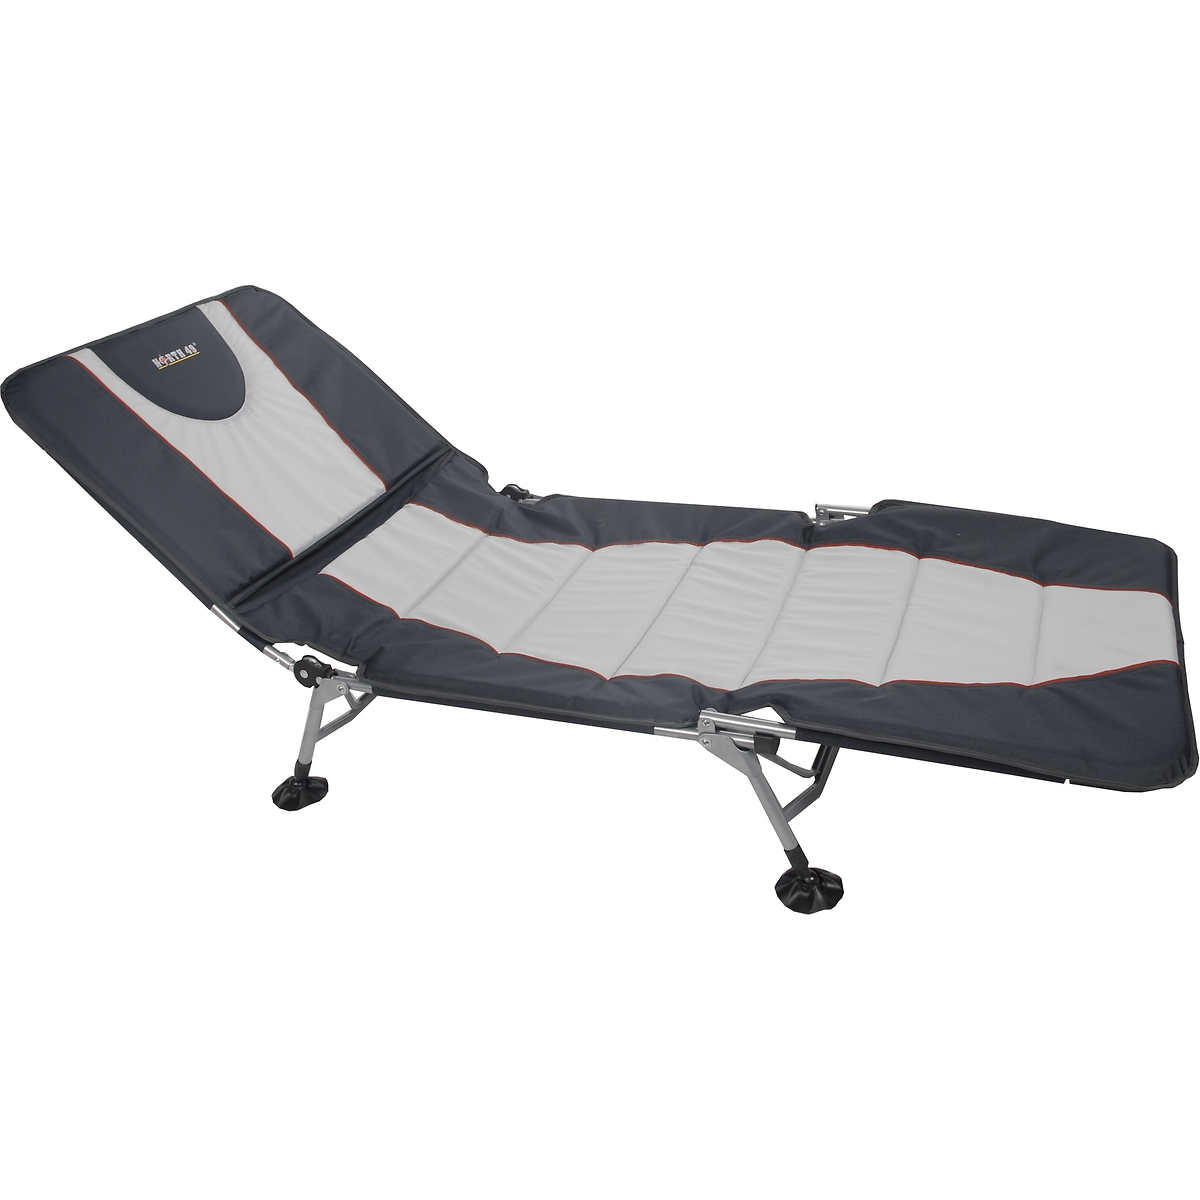 Camping bed costco - Member Only Item